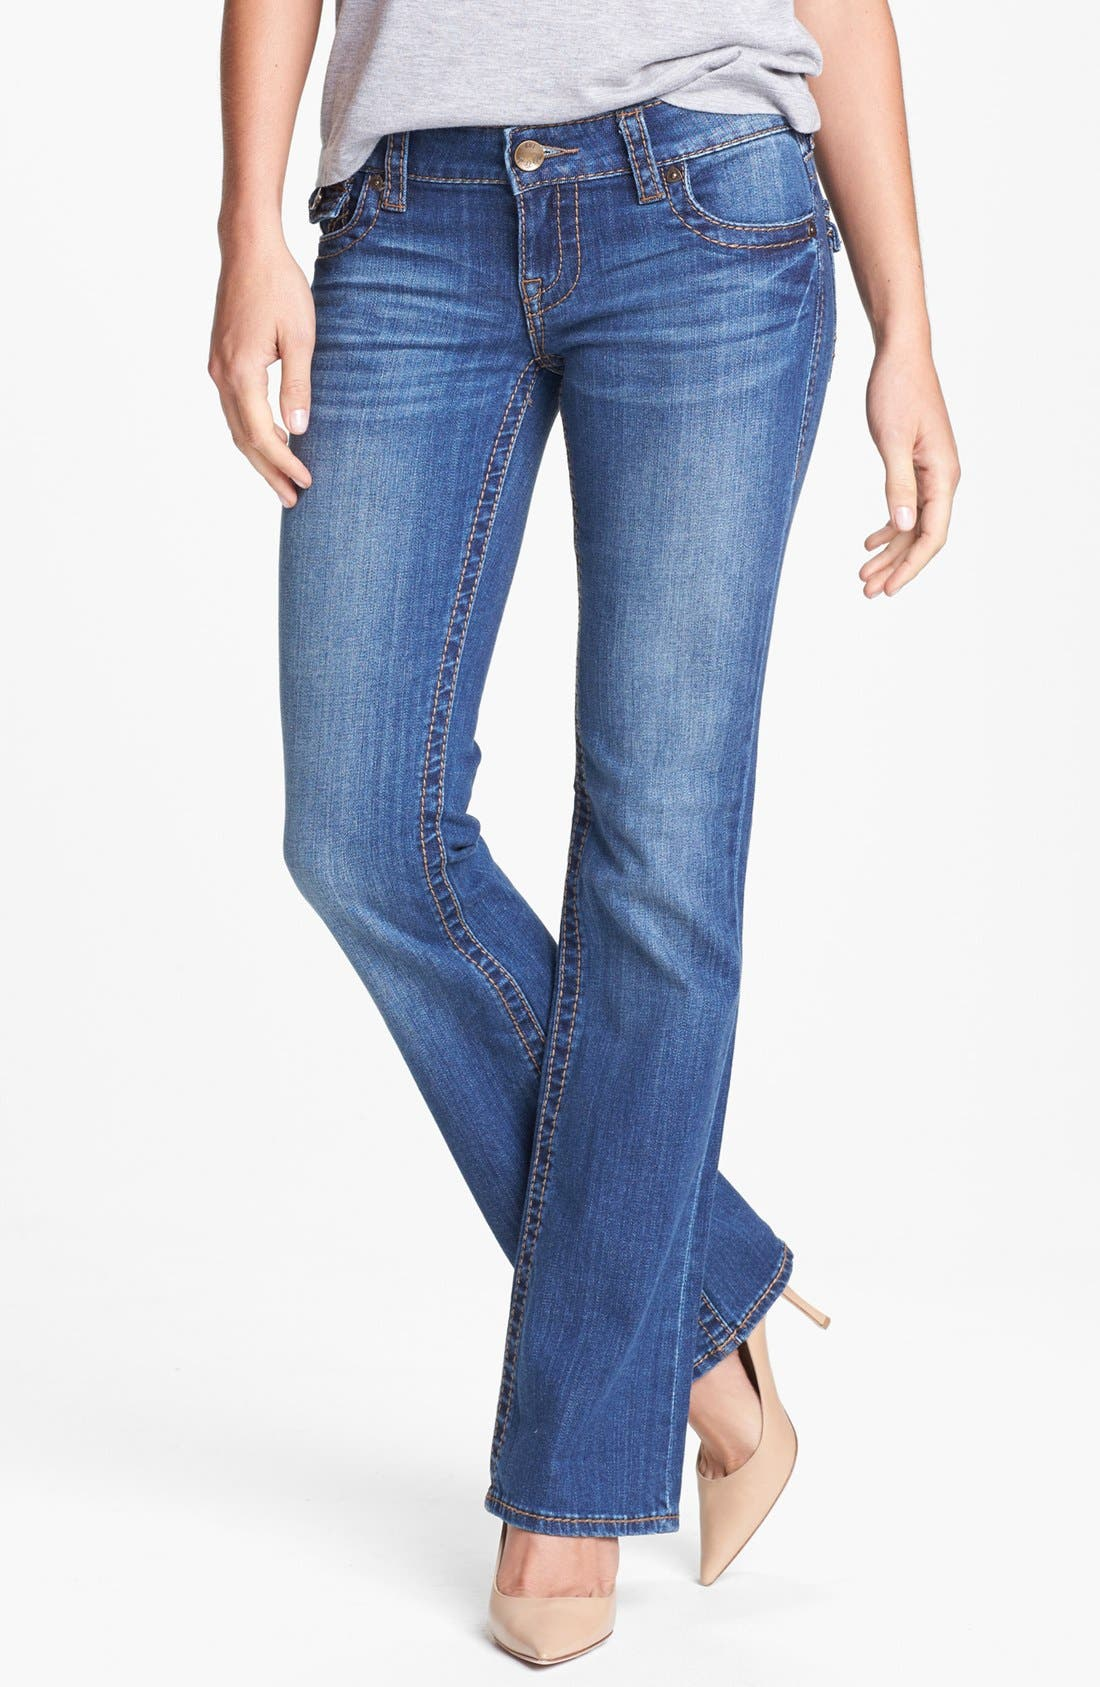 Alternate Image 1 Selected - KUT from the Kloth 'Kate' Bootcut Jeans (Regular & Tall) (Abundance)